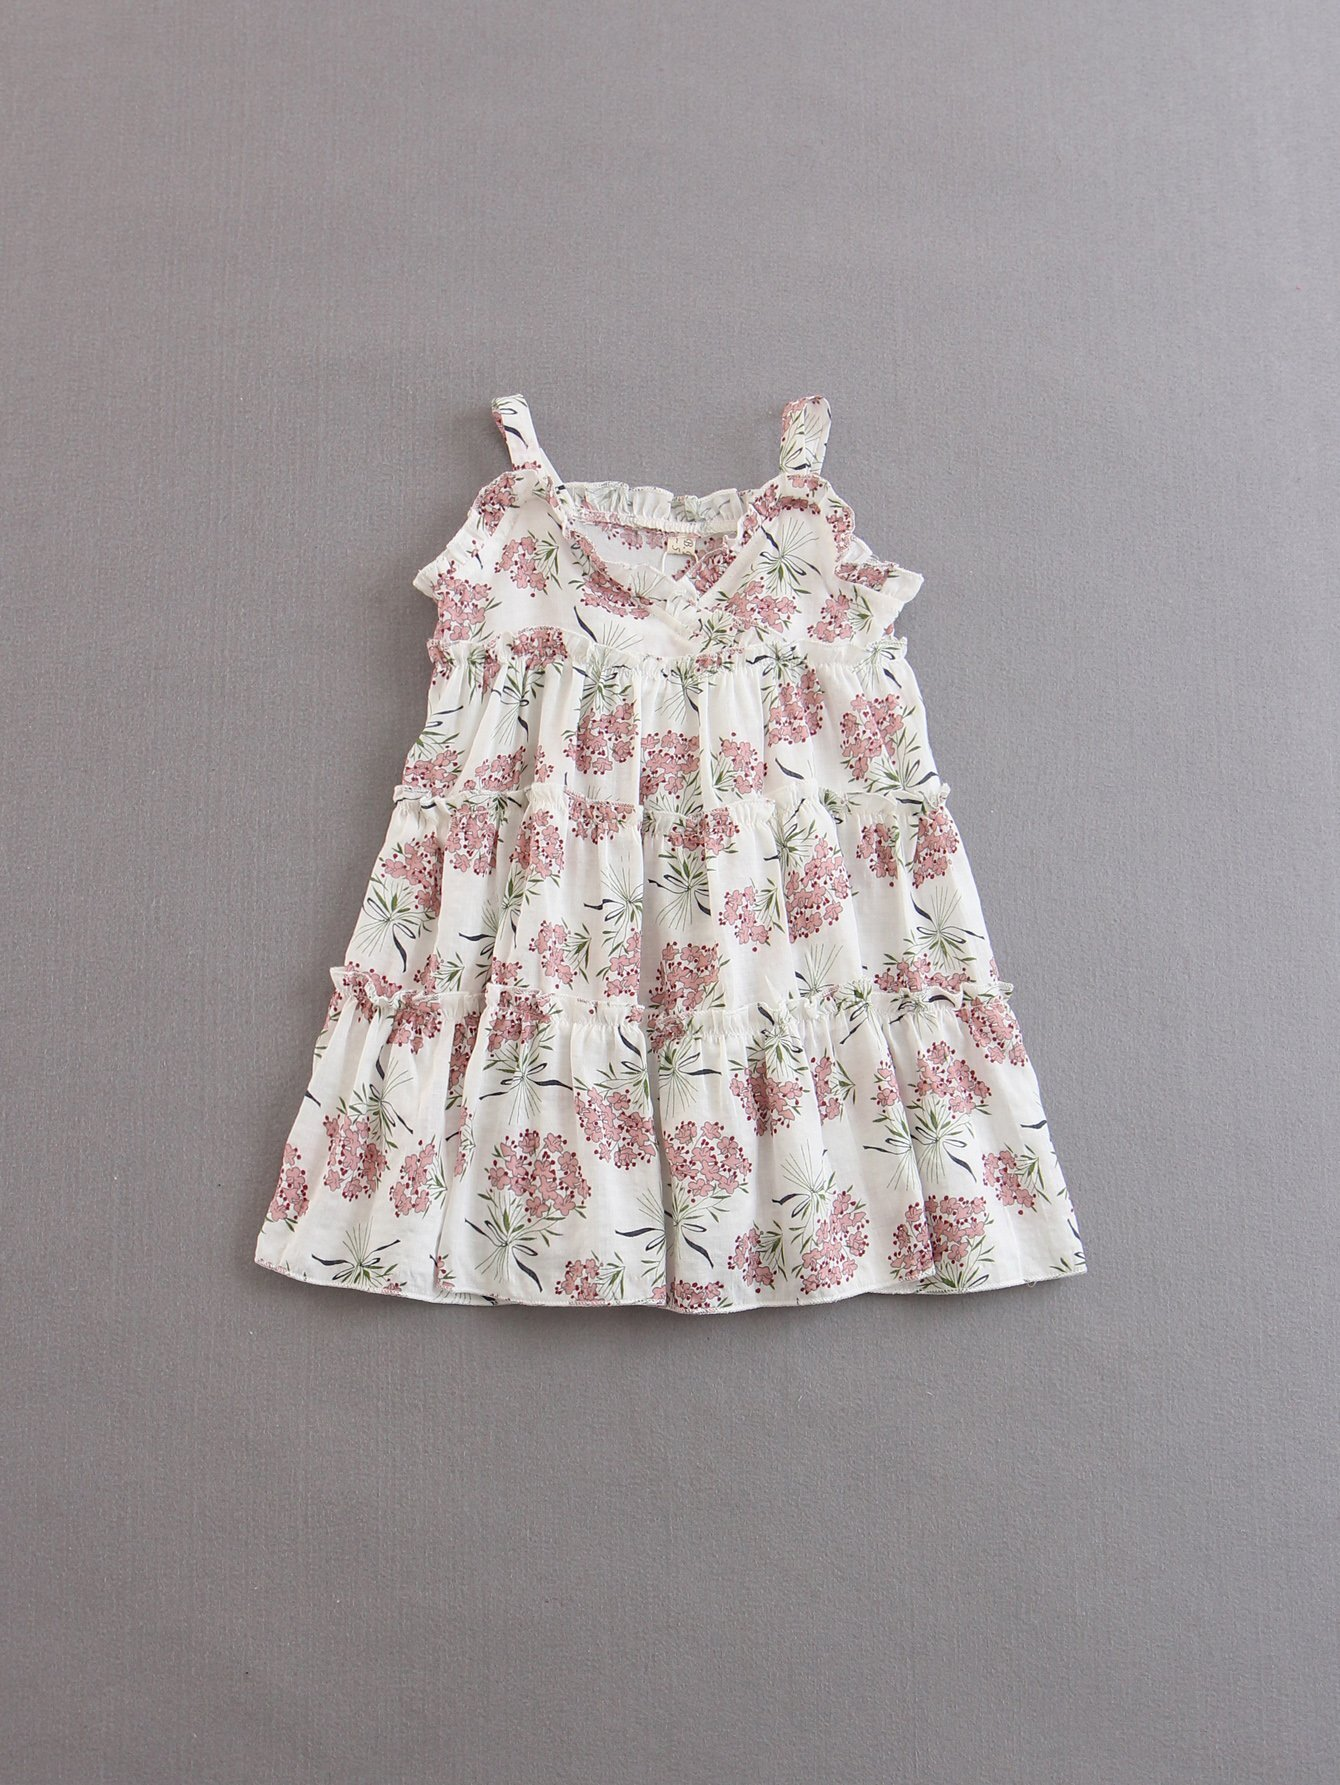 Kids Floral Frill Slip Dress kids floral frill slip dress